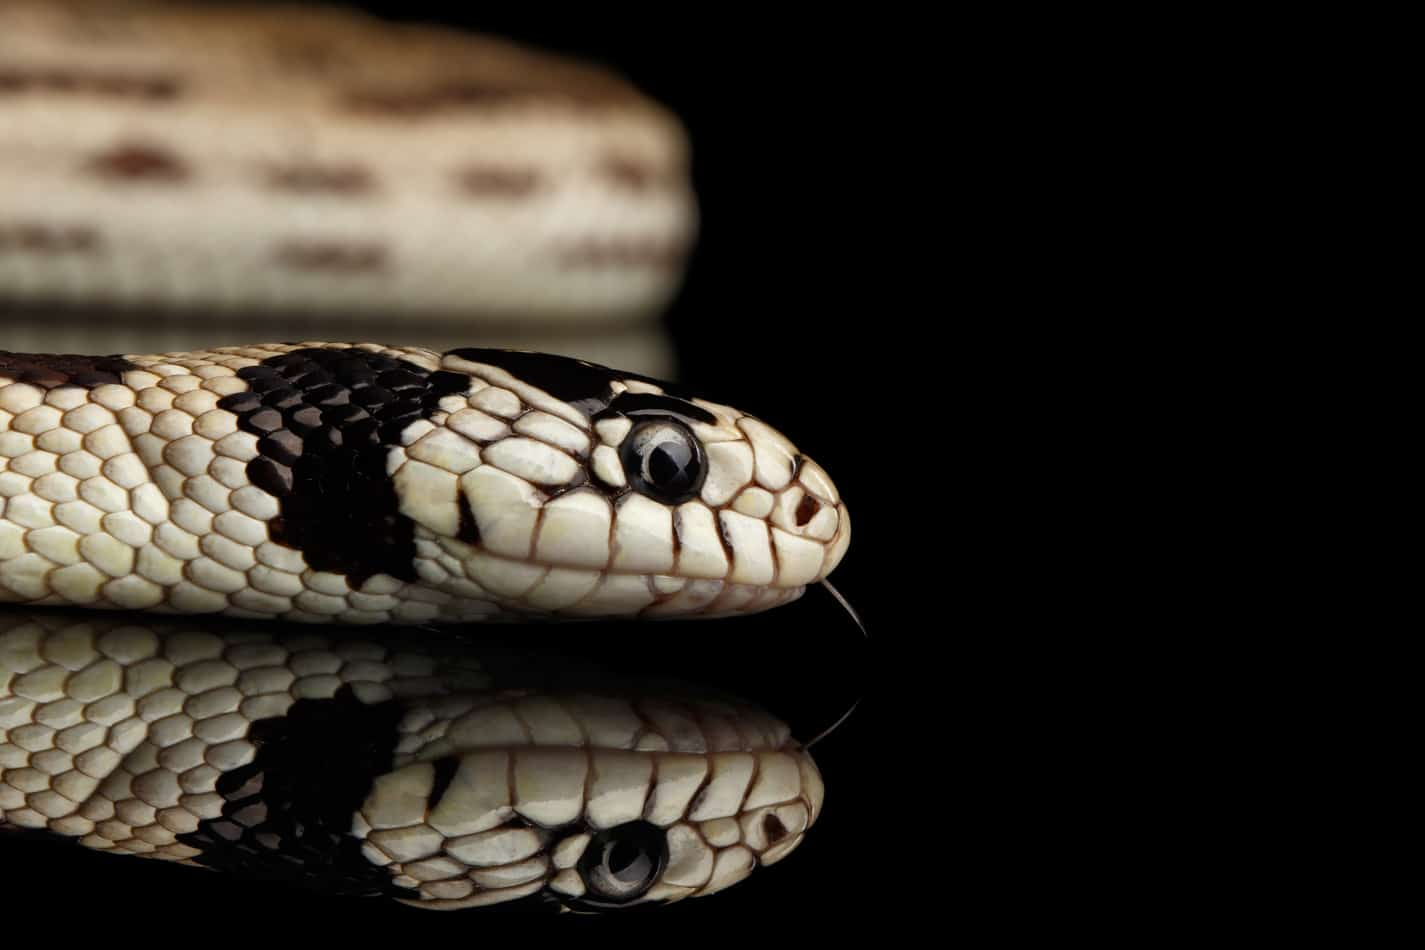 California King Snakes: Facts with Pictures and Video